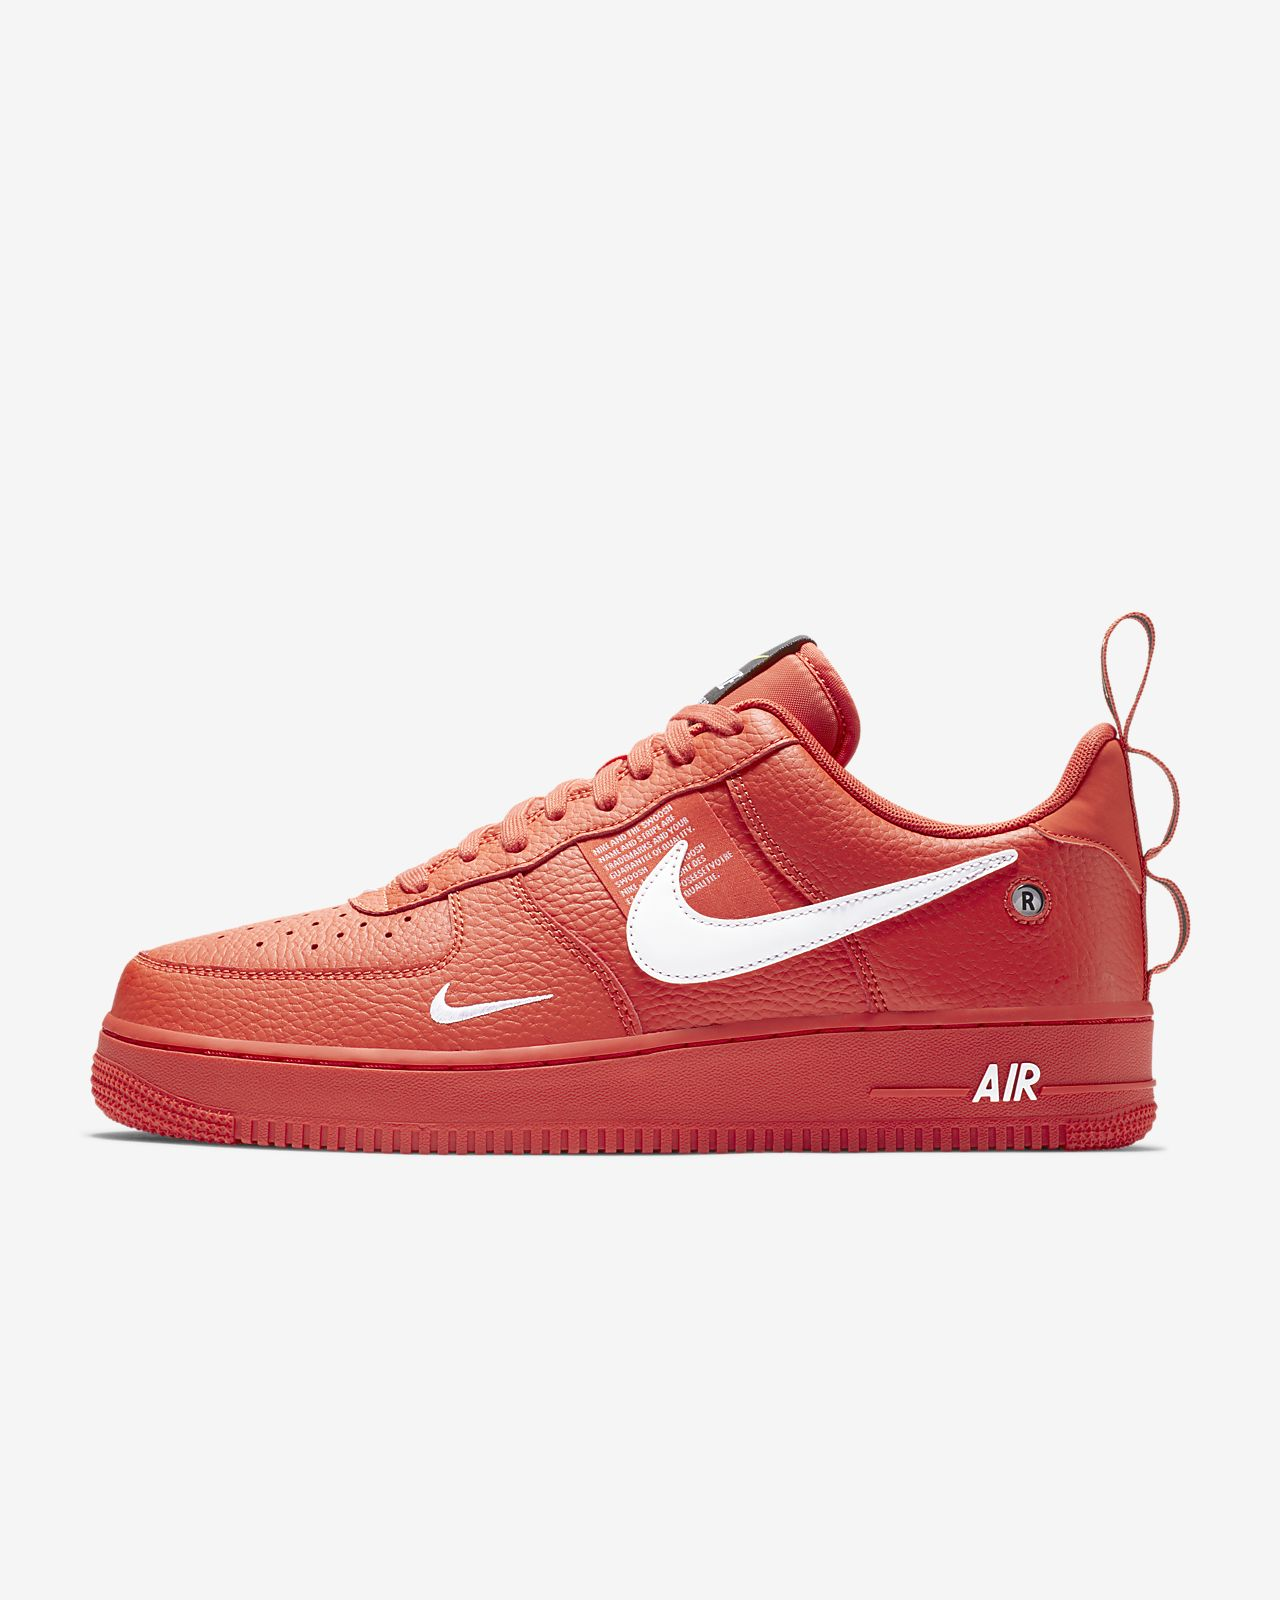 half off 9a9d9 8d670 ... Nike Air Force 1  07 LV8 Utility Men s Shoe